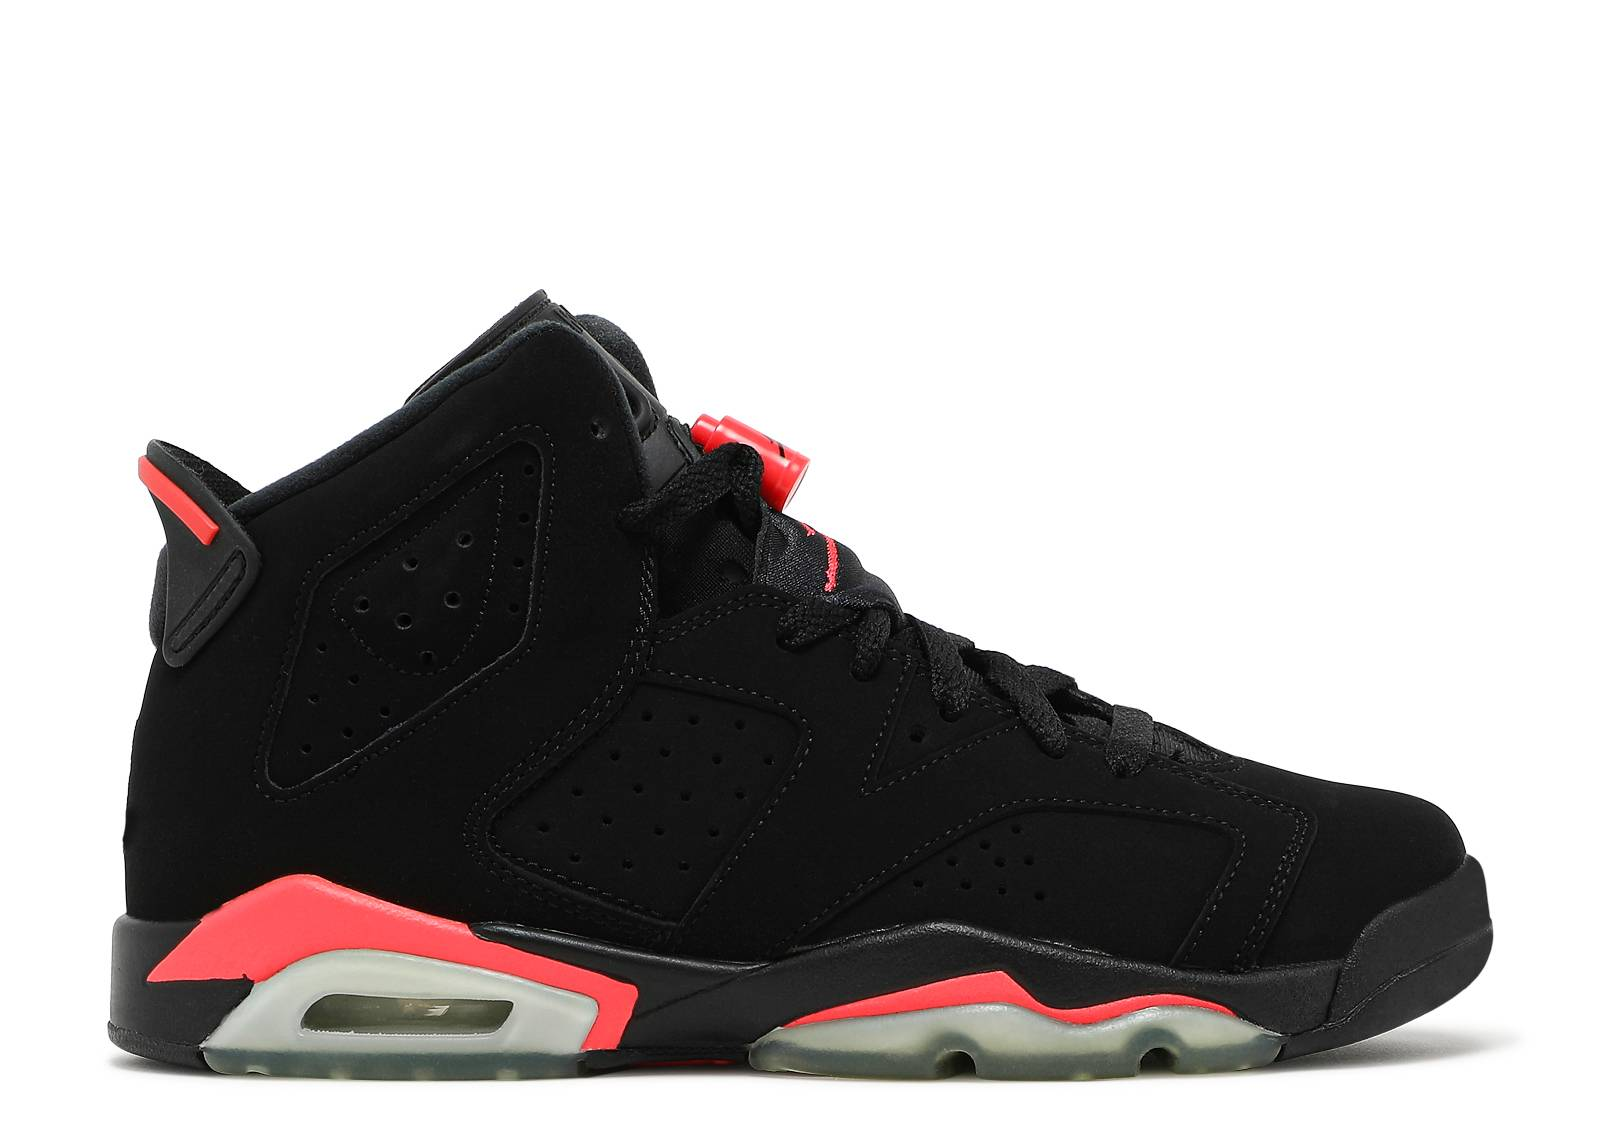 quality design 0e824 5a5f5 air jordan. air jordan 6 retro ...